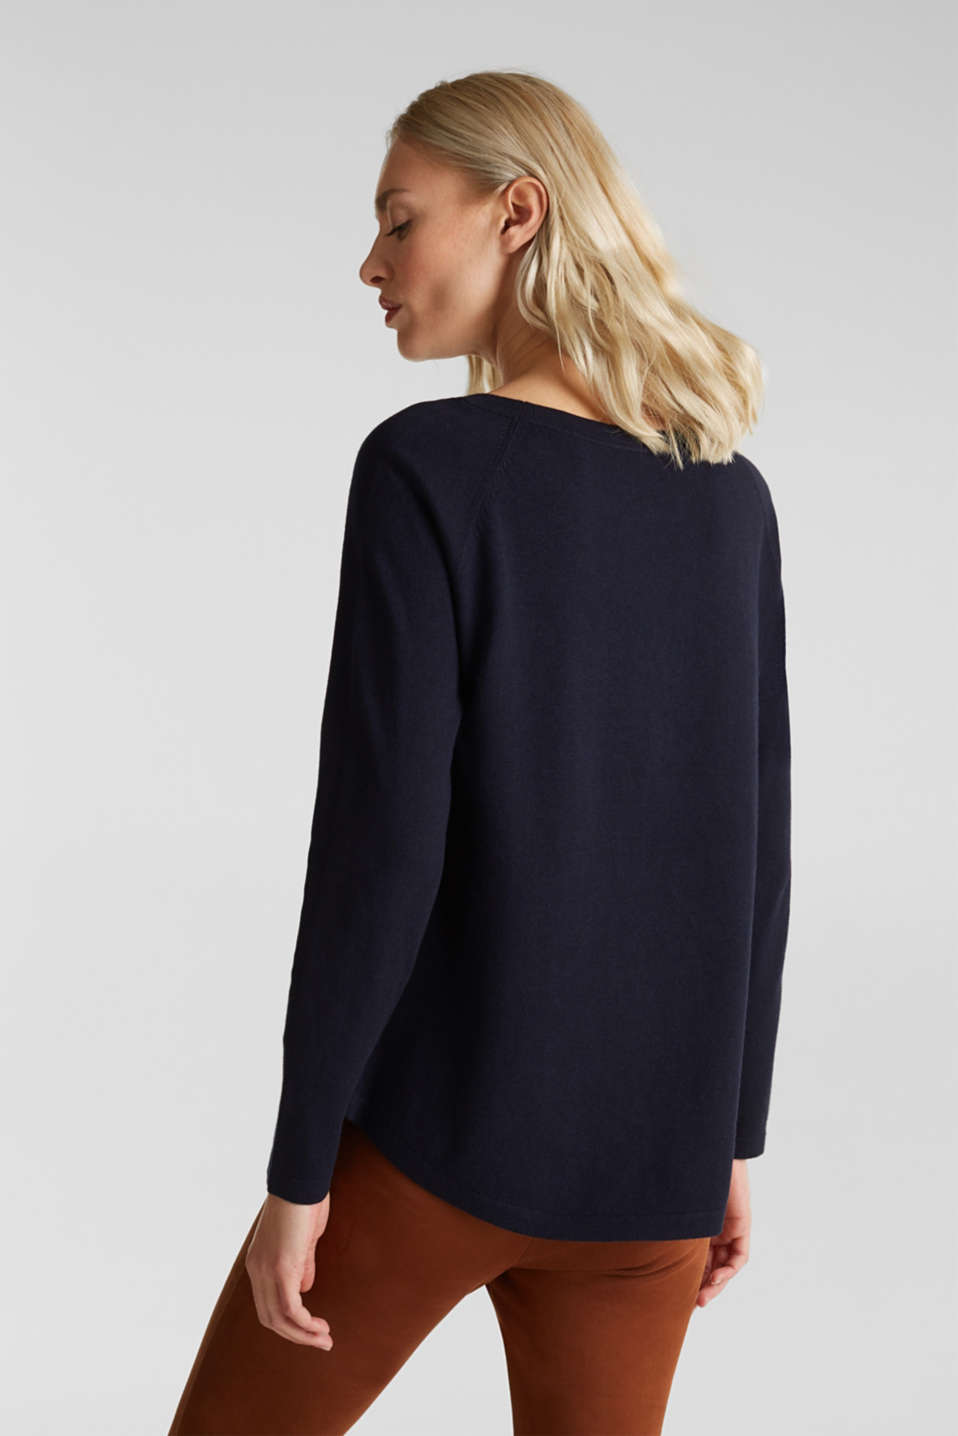 With linen: Jumper with open-work patterned details, NAVY, detail image number 3